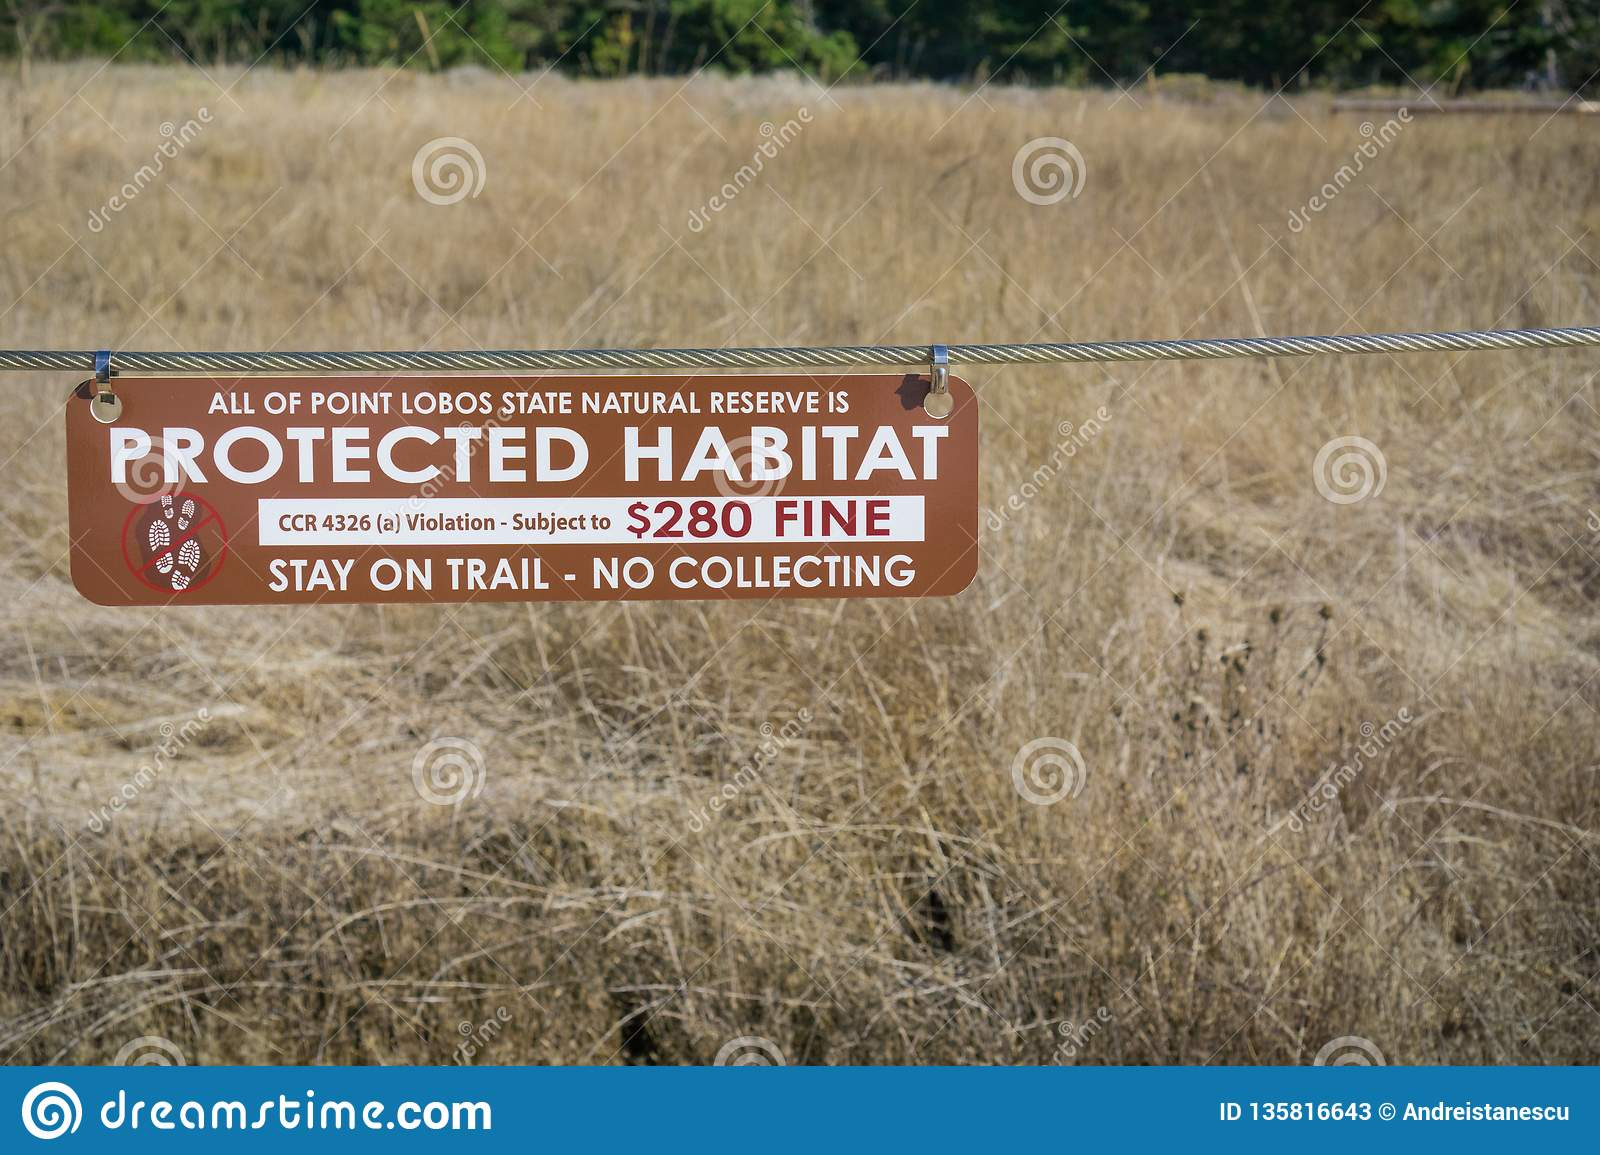 November 5, 2017 Carmel-By-The-Sea/USA - Protected Habitat, Stay on trail - no collecting sign in Point Lobos Stare Reserve, a